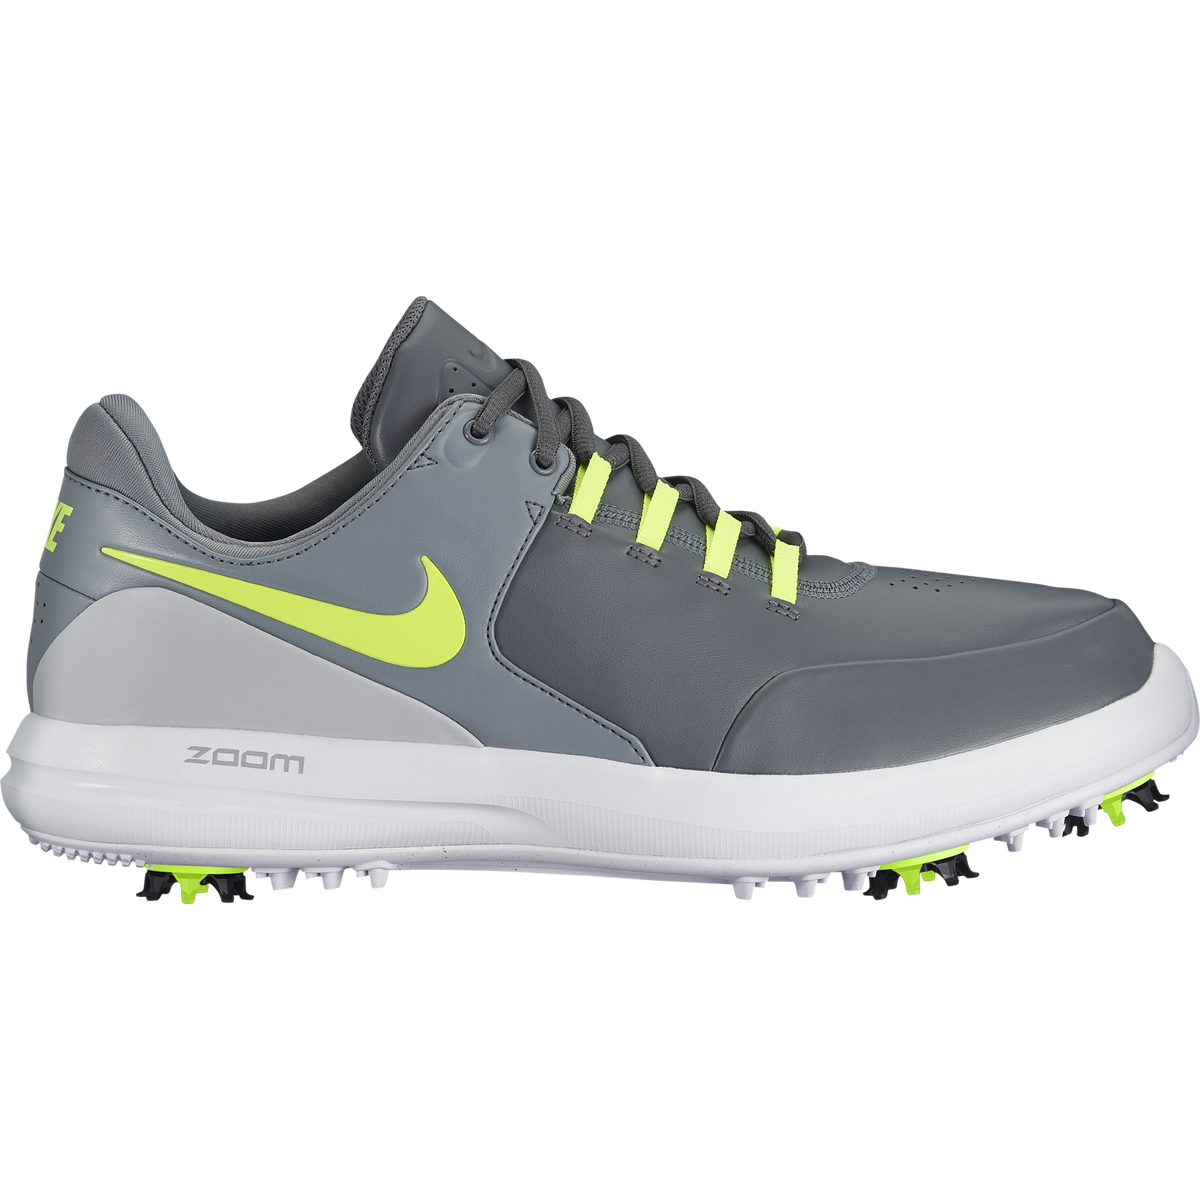 91d55a387860 Nike Air Zoom Accurate Men s Golf Shoe - Grey